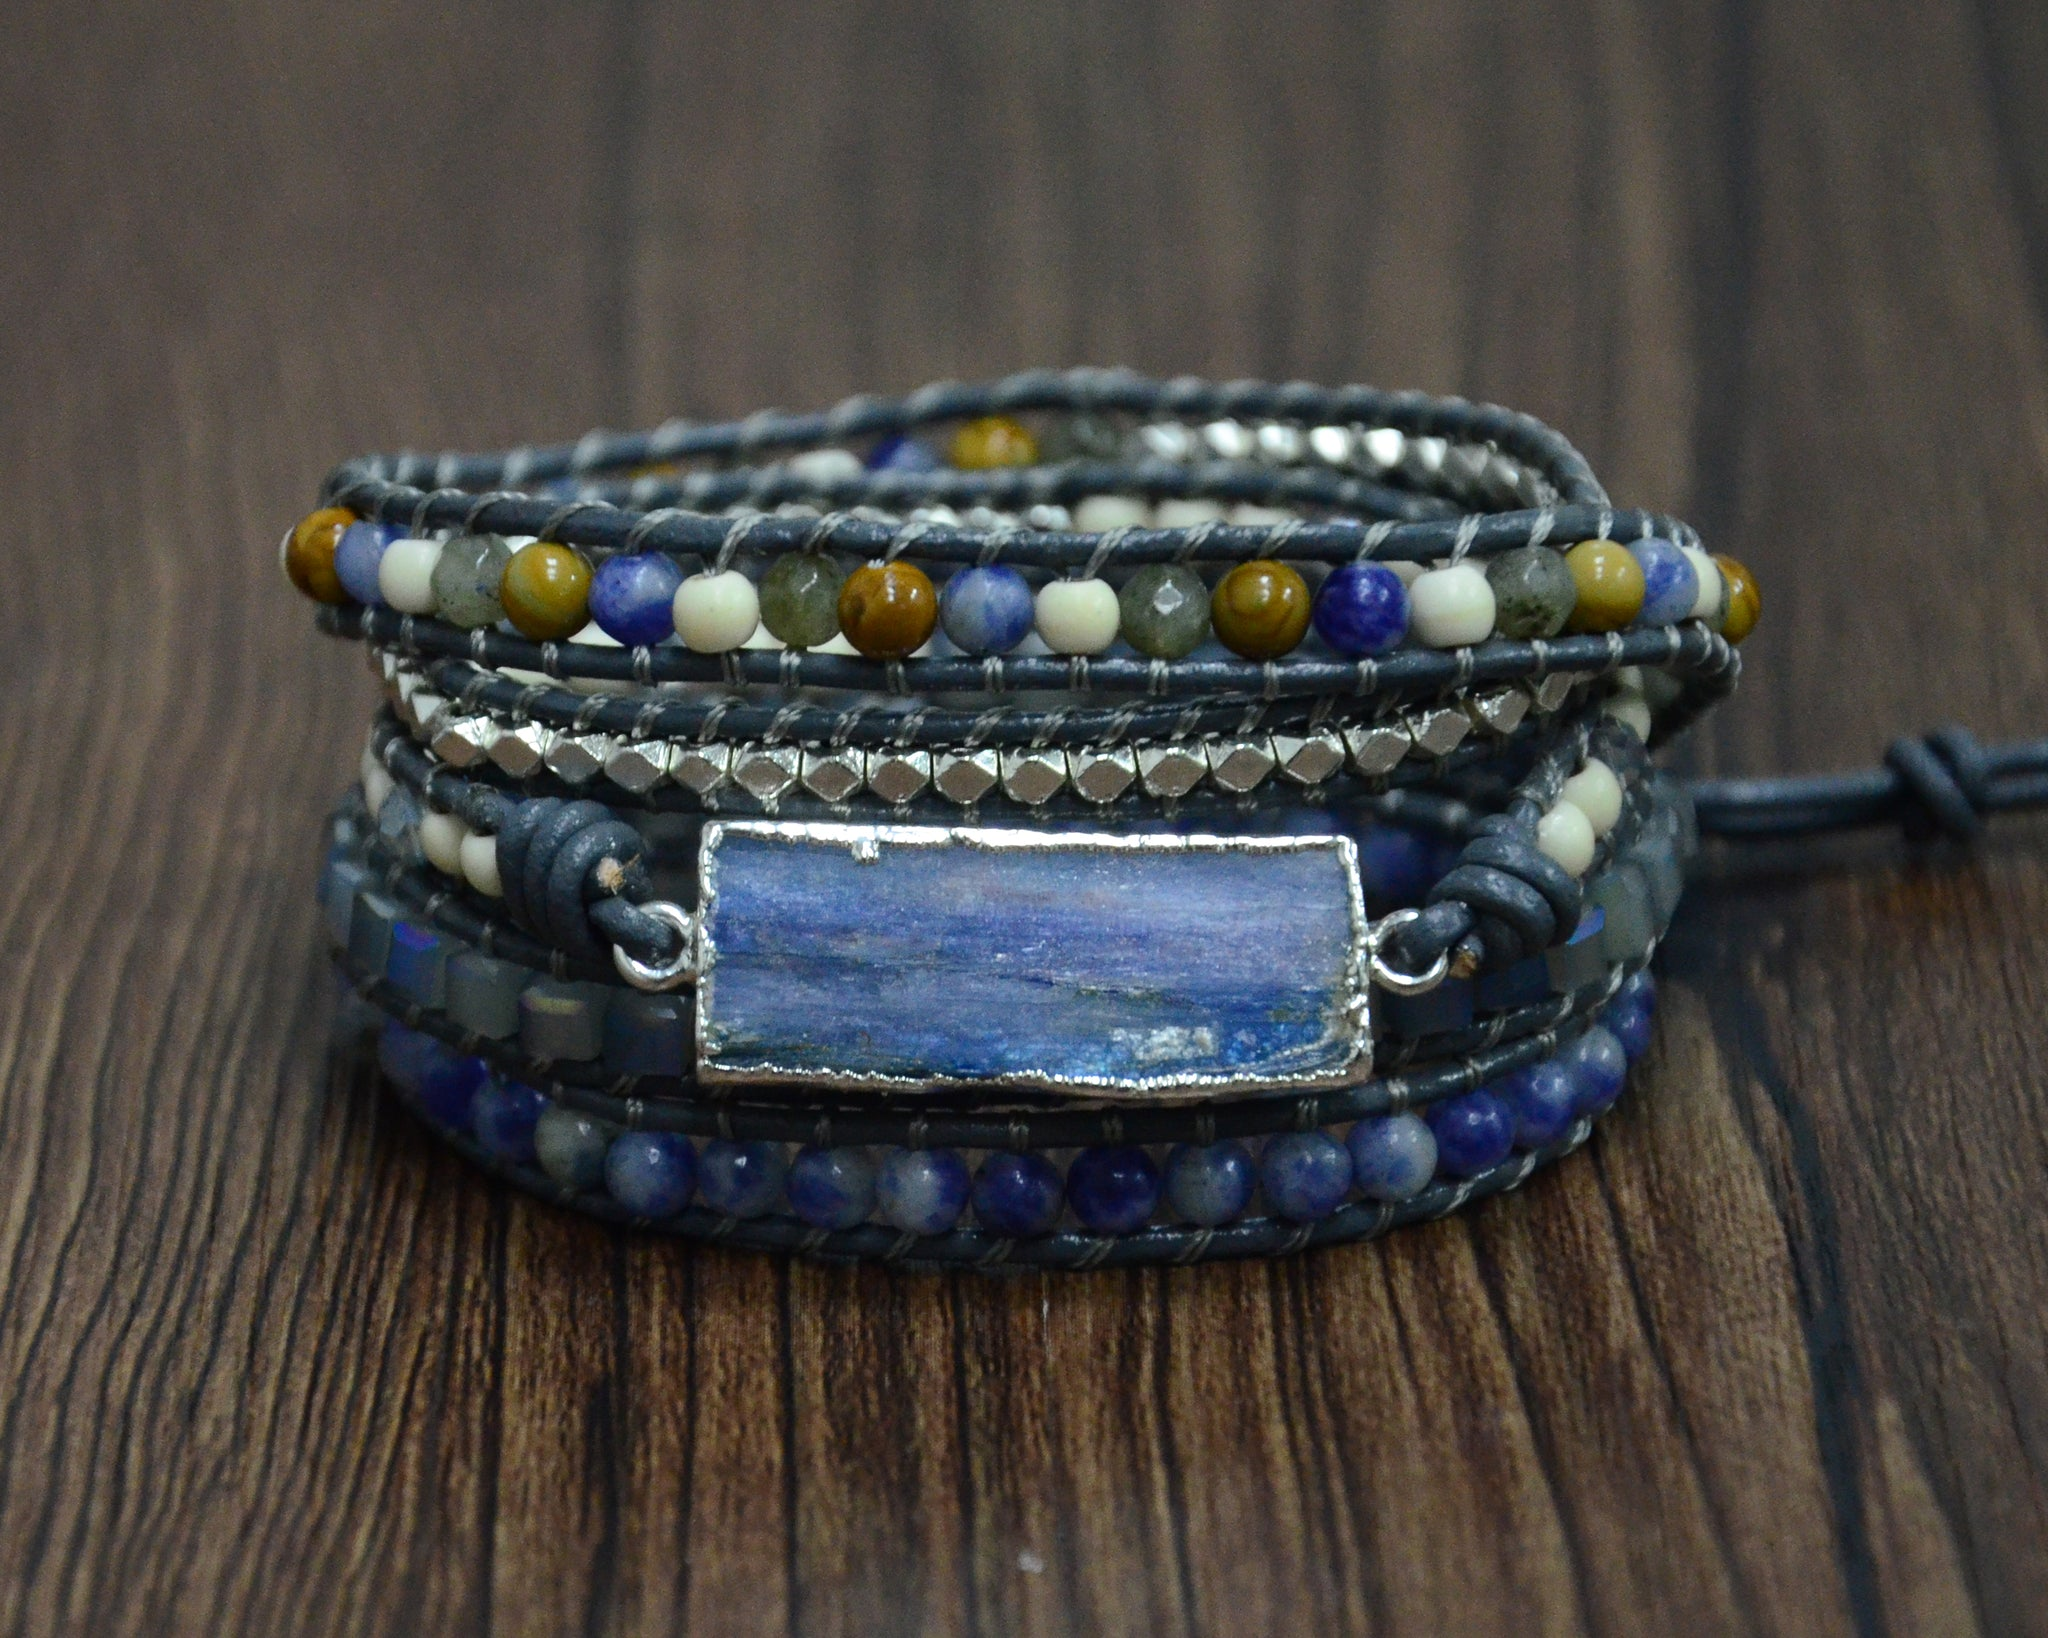 Awakened Mind's Eye Blue Topaz Bracelet